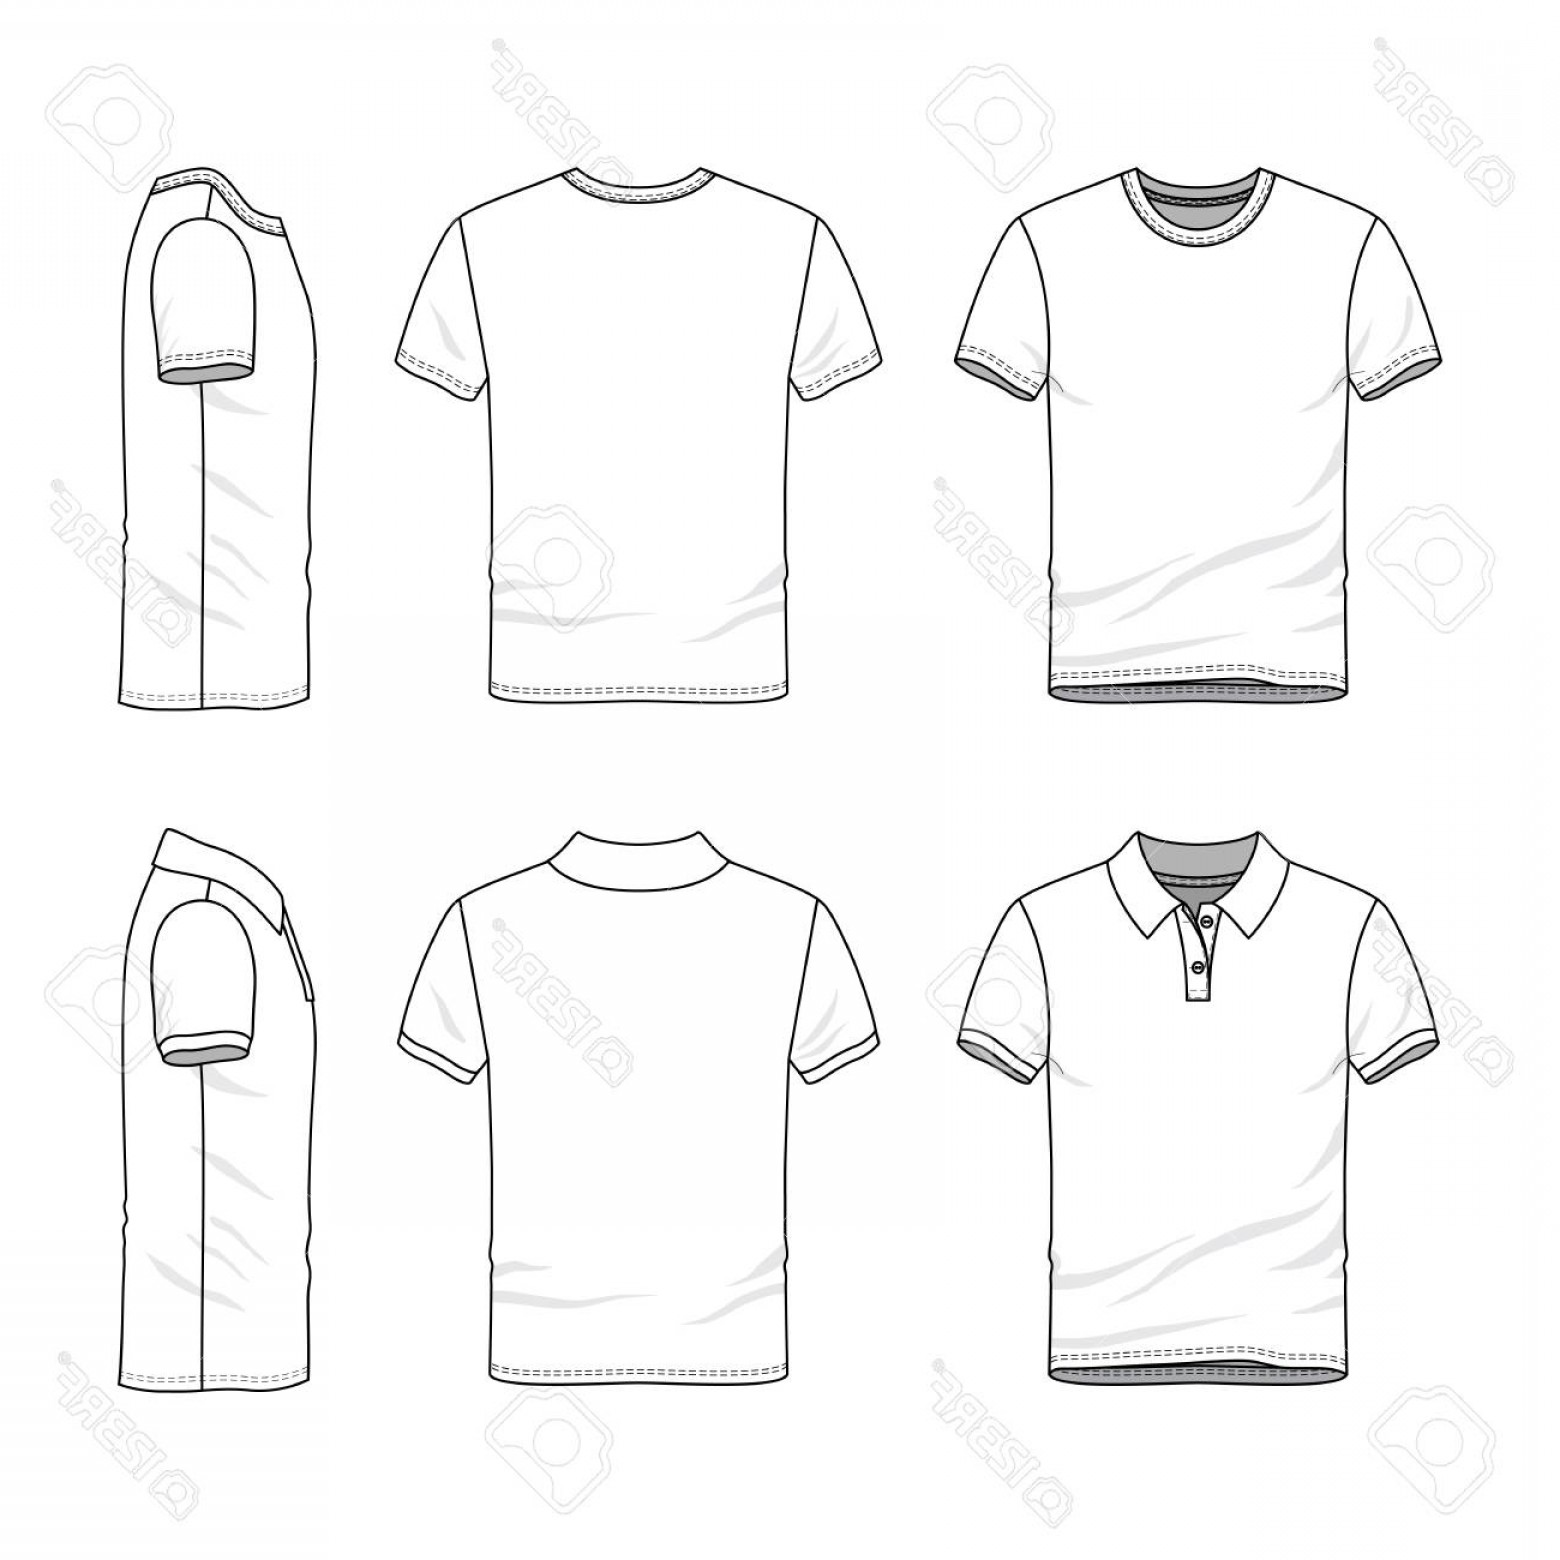 Sweatshirt Vector Template: Photostock Illustration Male Clothing Set Blank Vector Templates Of White T Shirt And Polo Shirt Fashion Illustration Line A